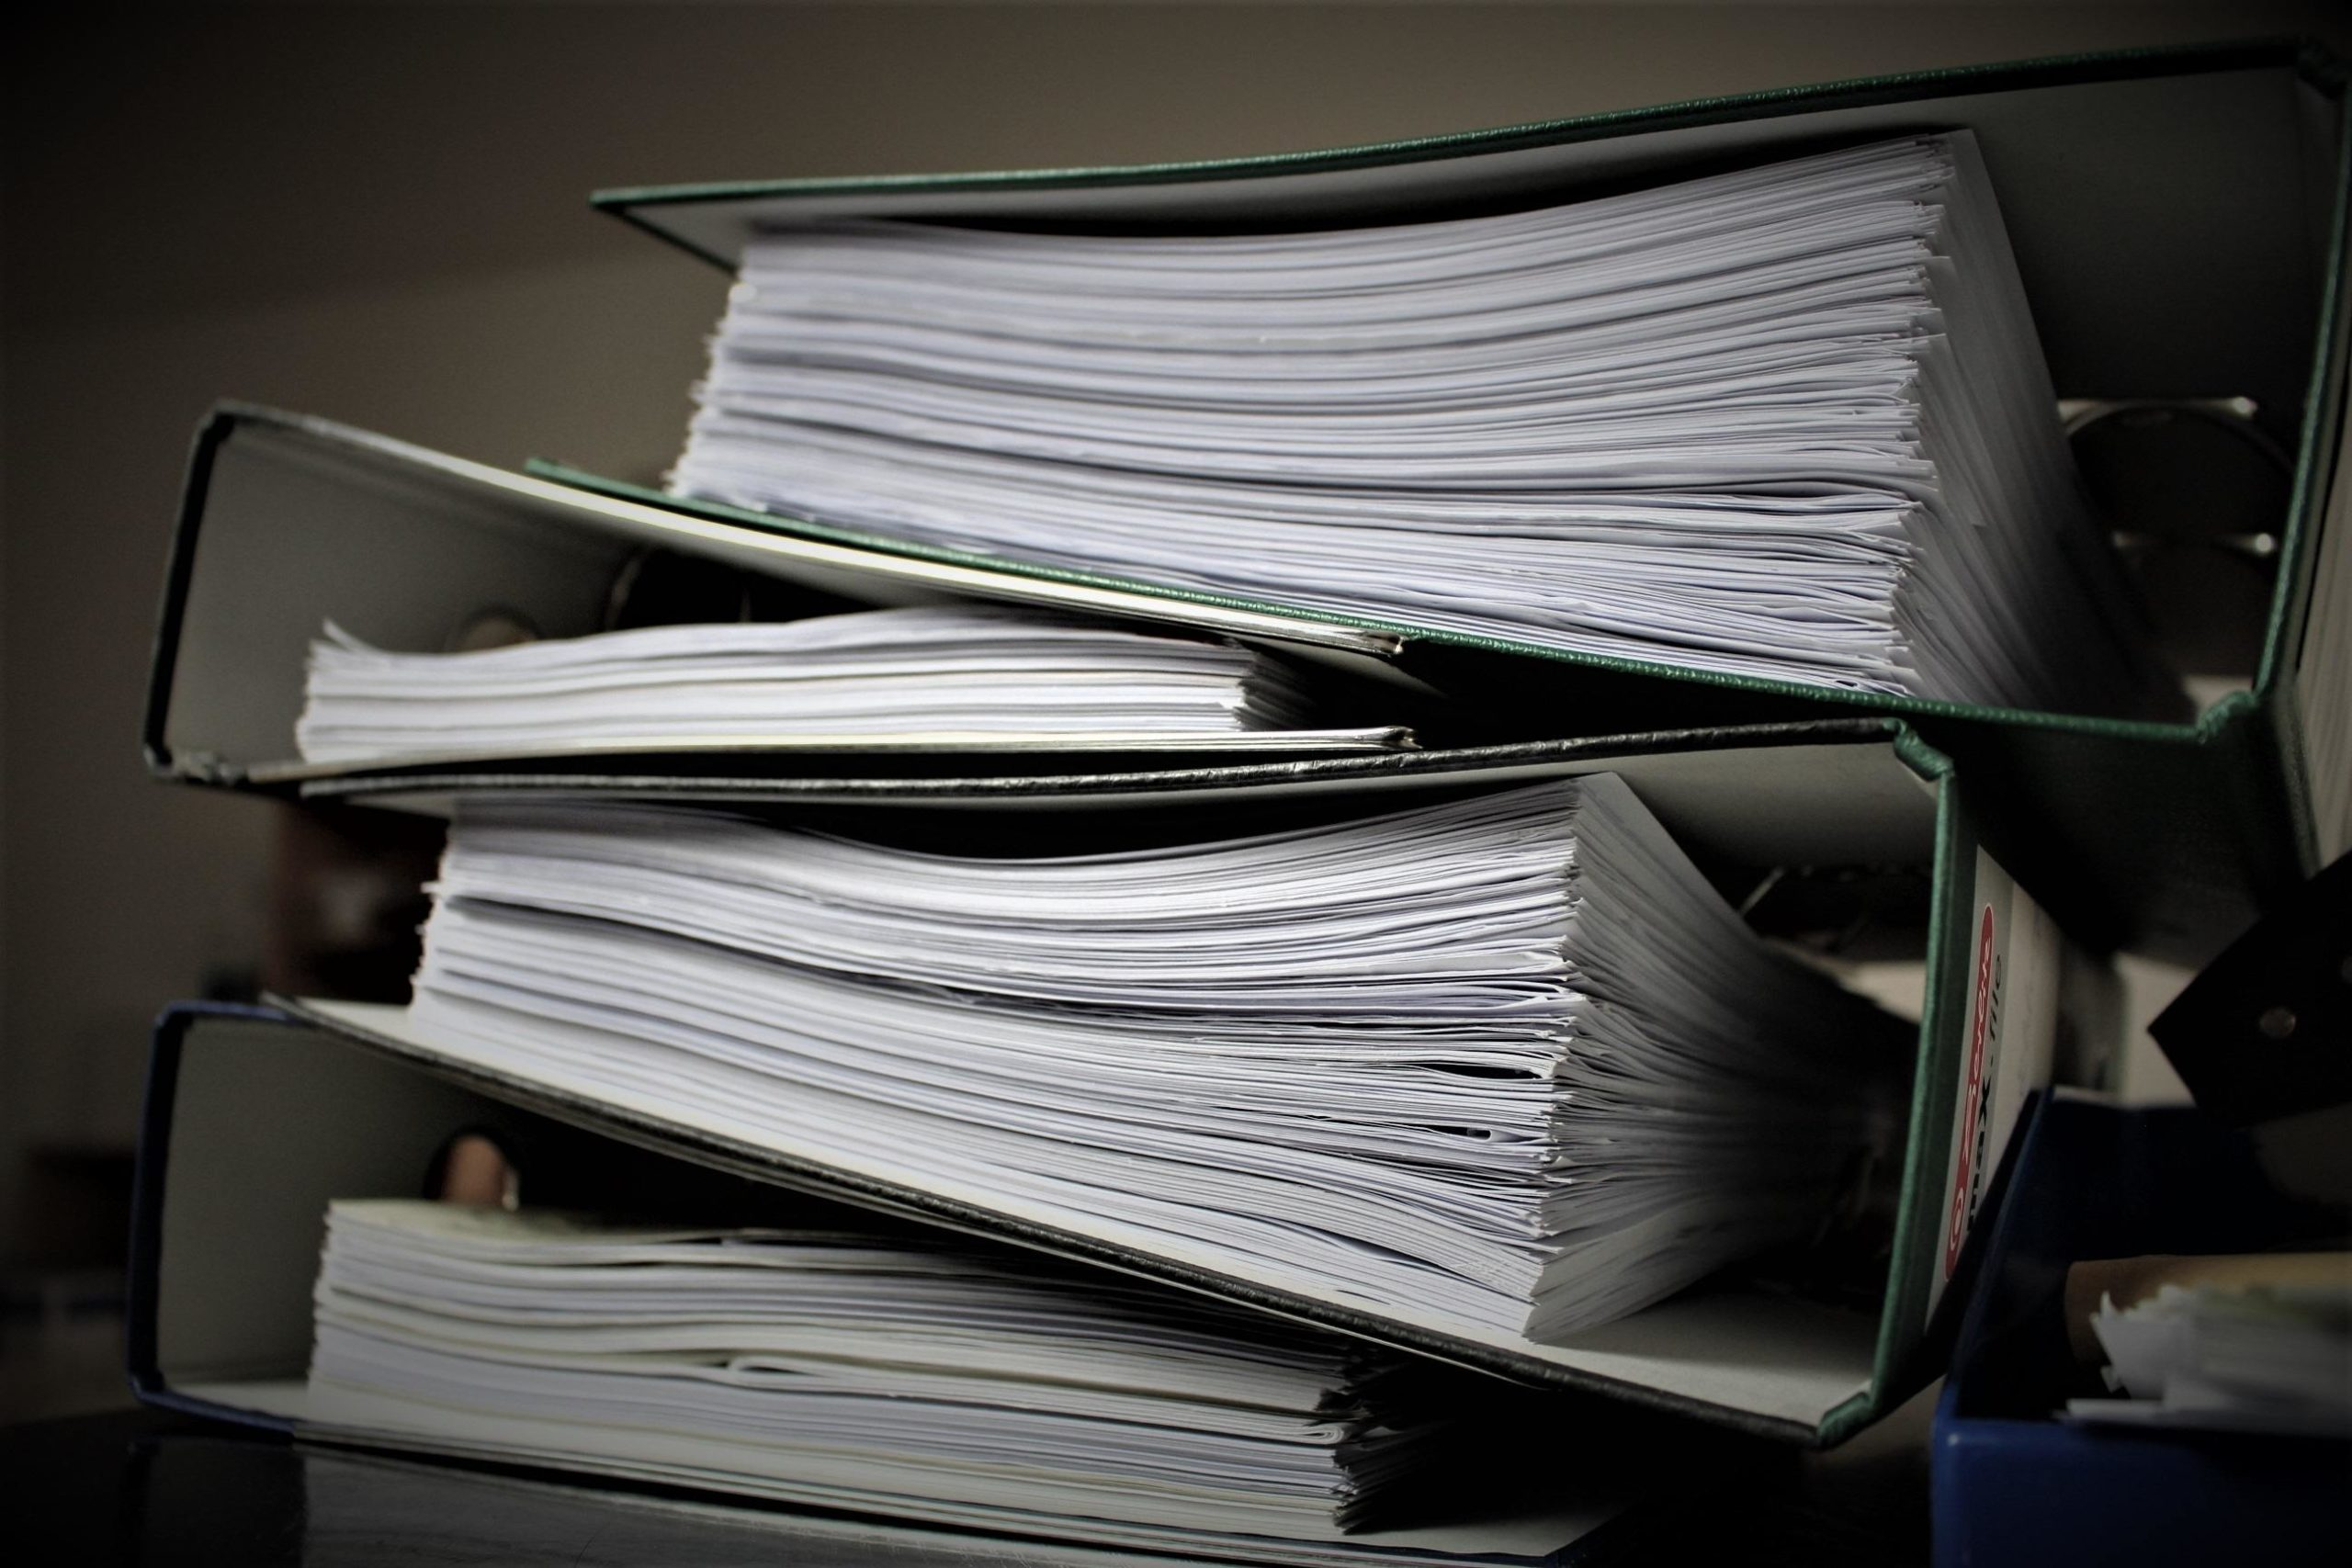 Starting your own law firm? Consider a paperless practice.